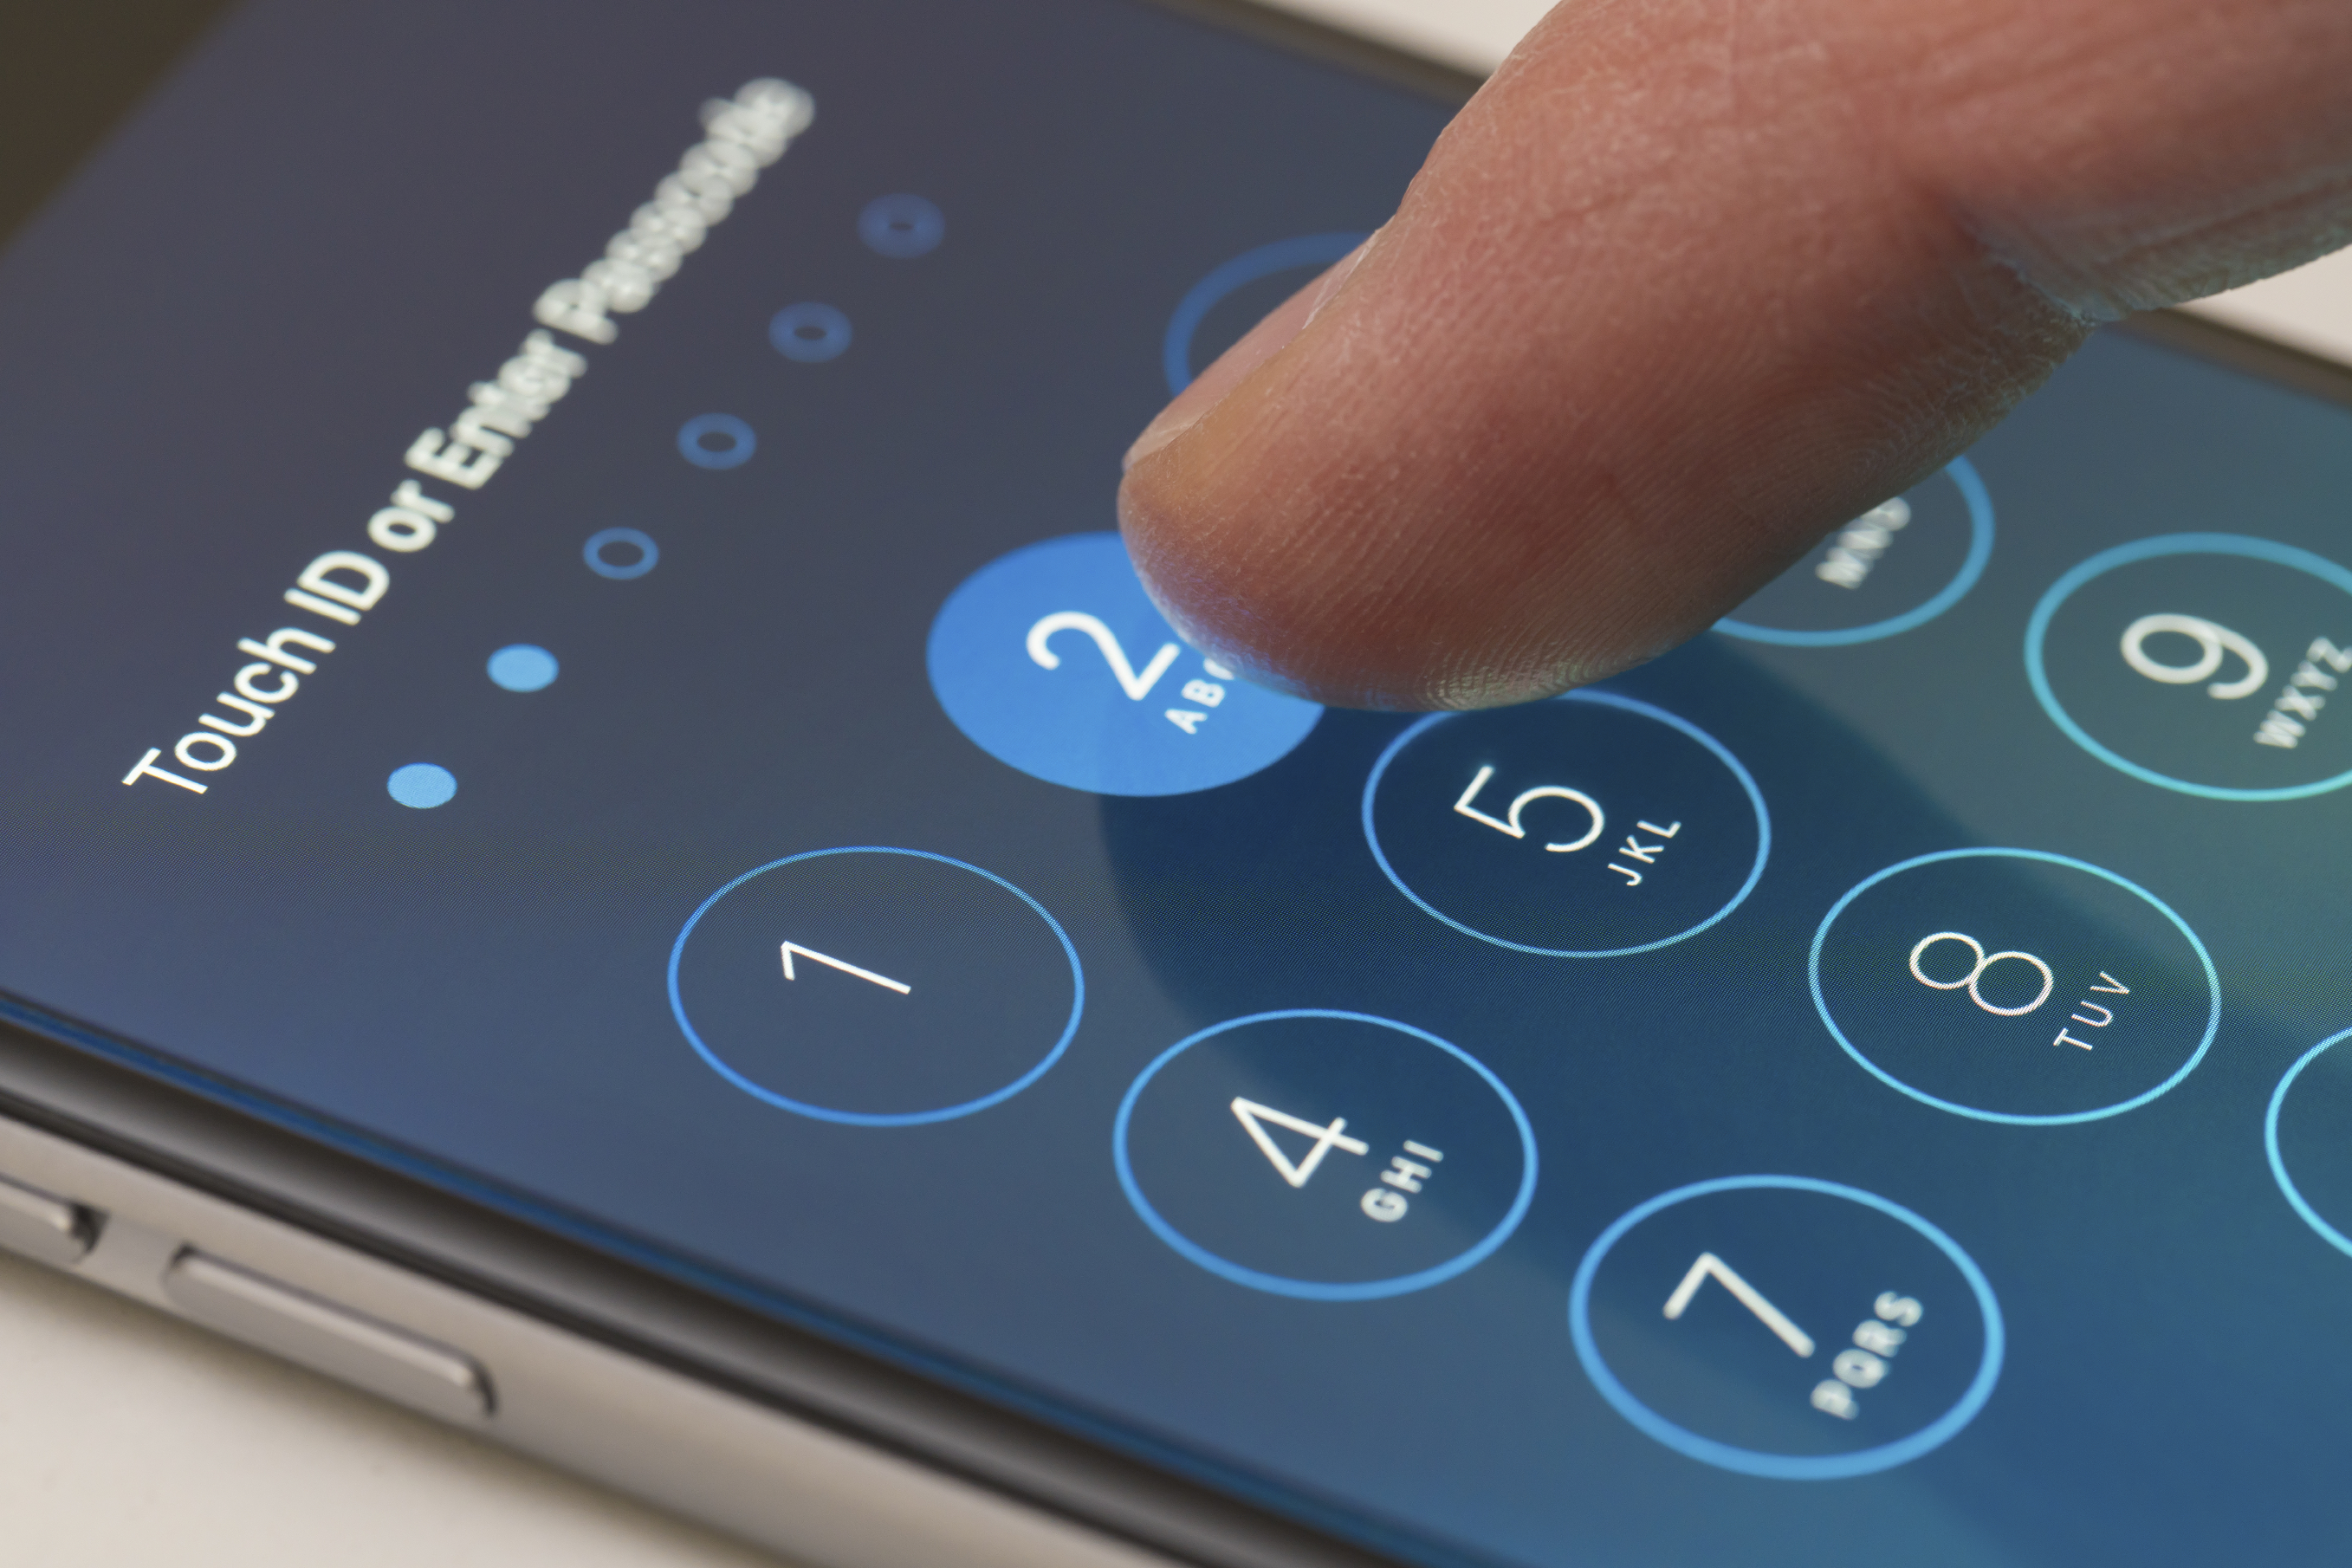 Entering a passcode on an iPhone running iOS9. (iStock Photo)